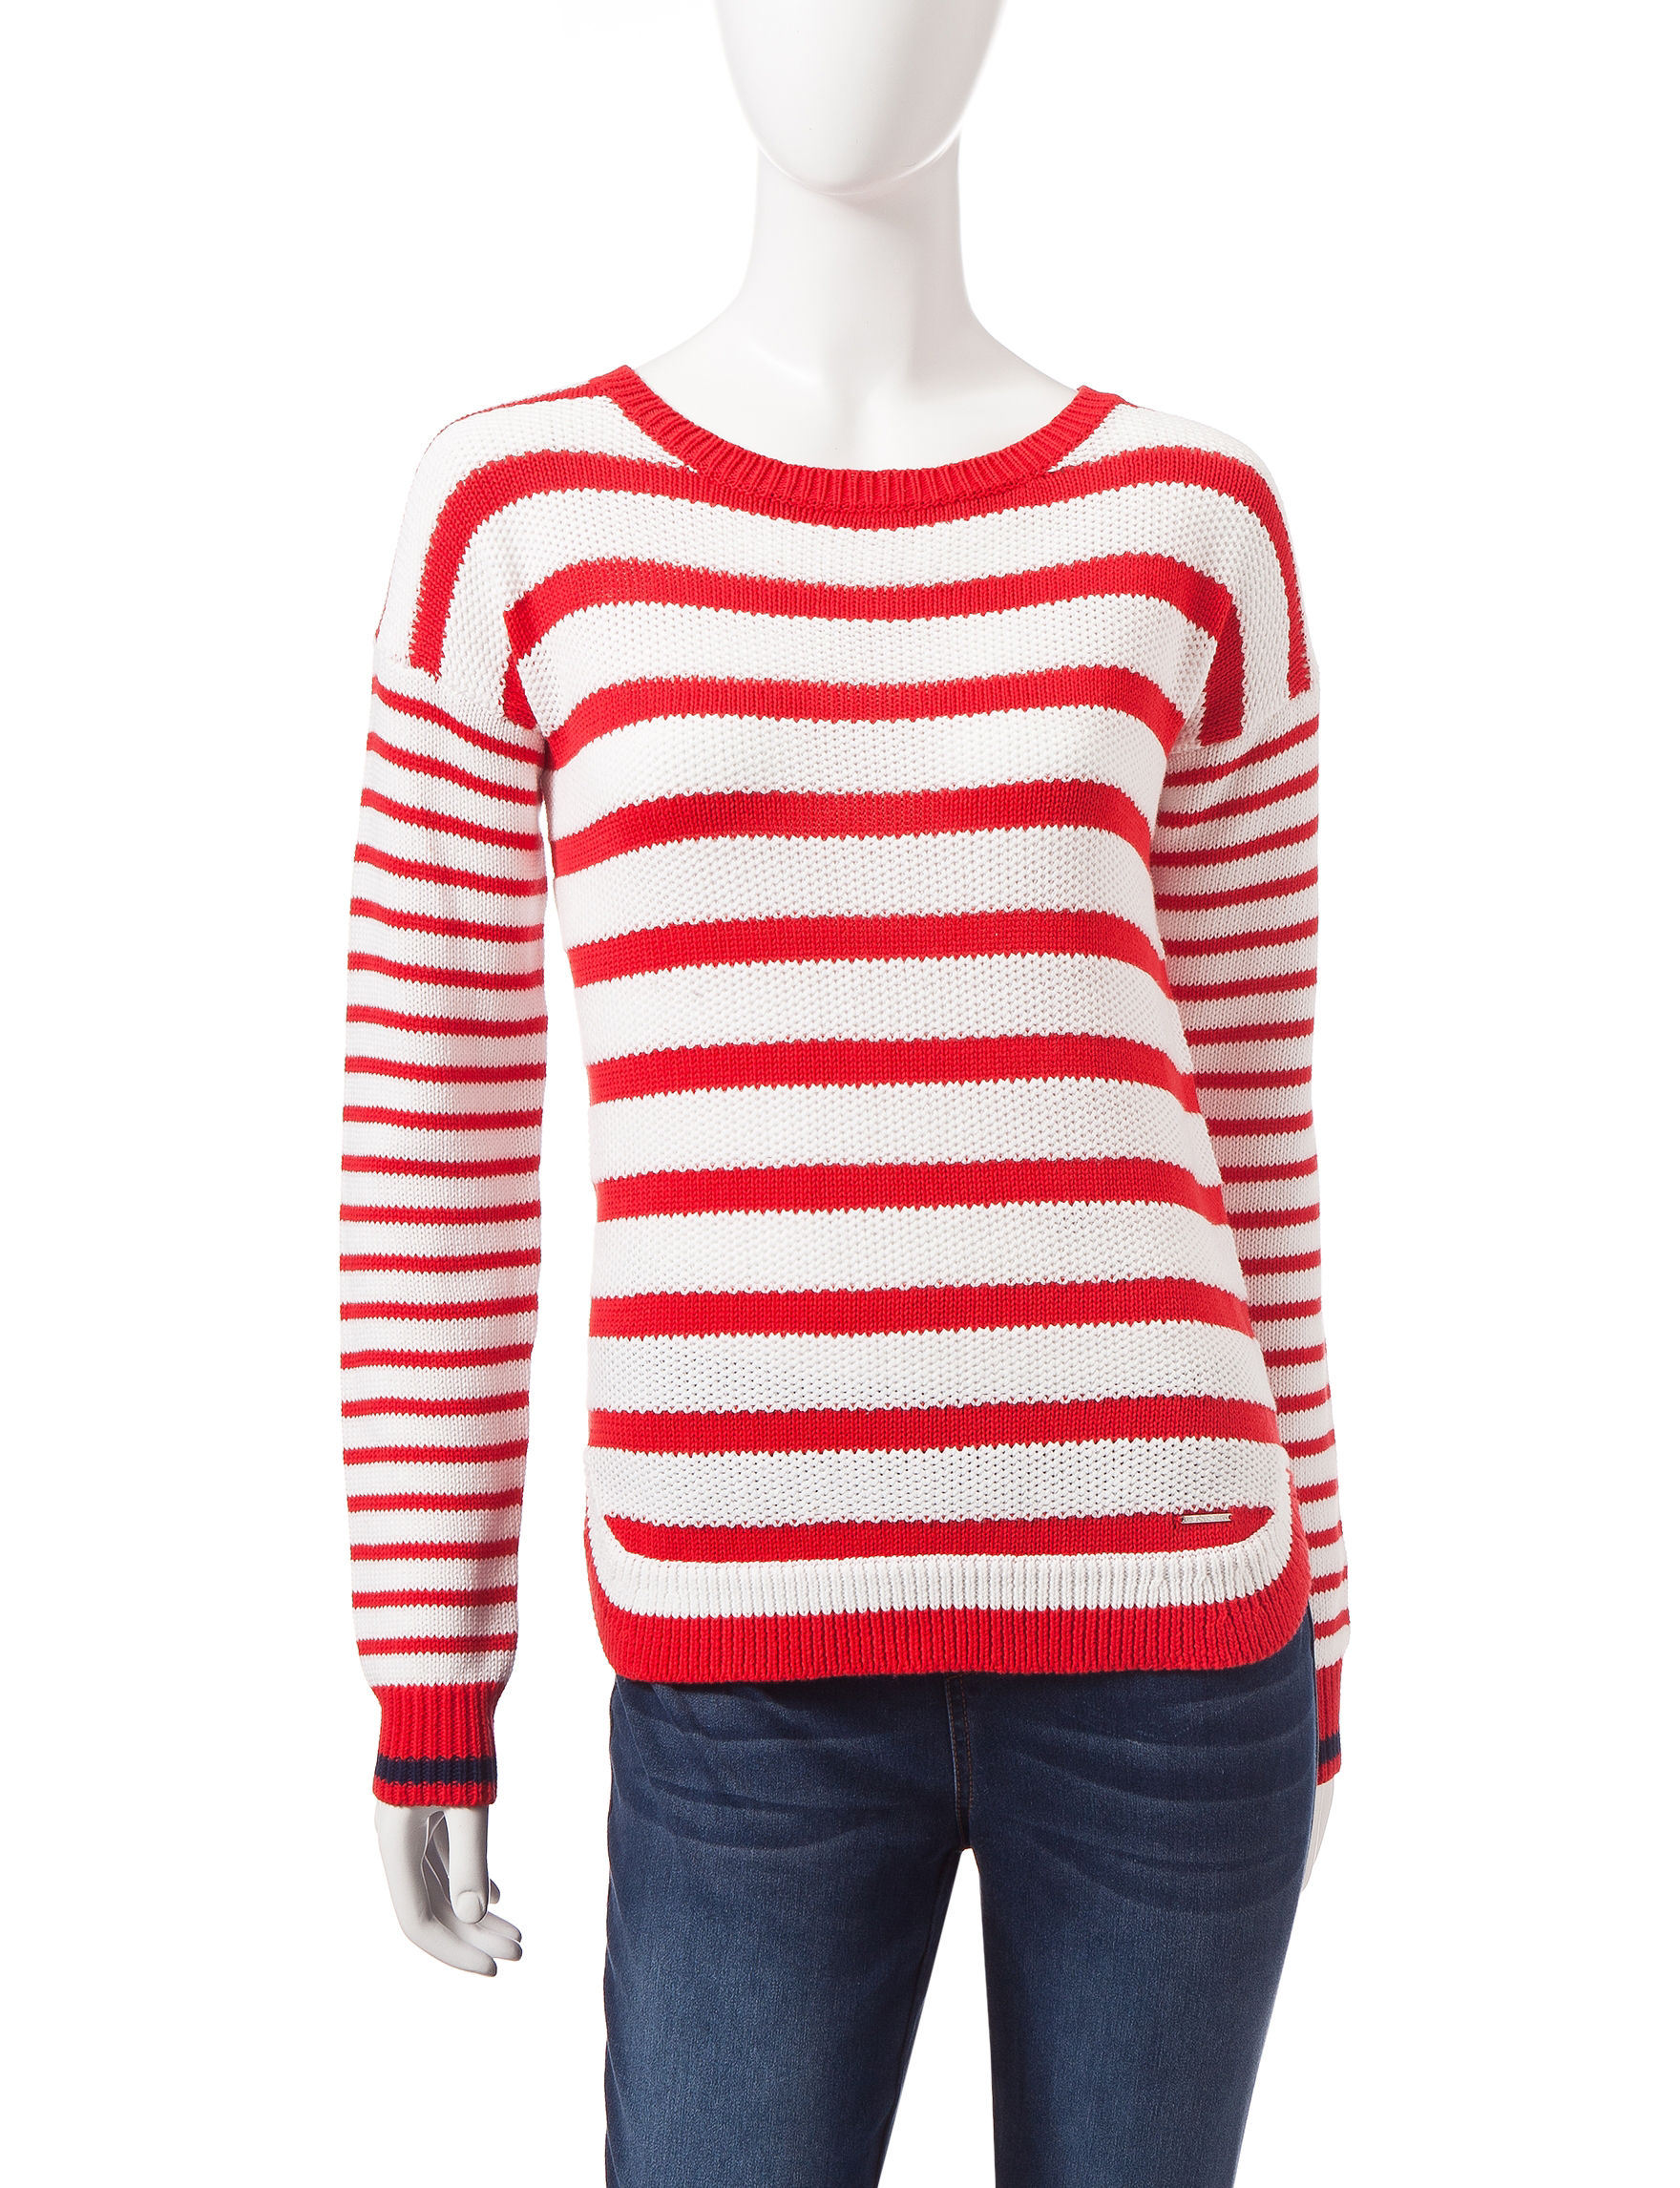 U.S. Polo Assn. Red / White Pull-overs Sweaters